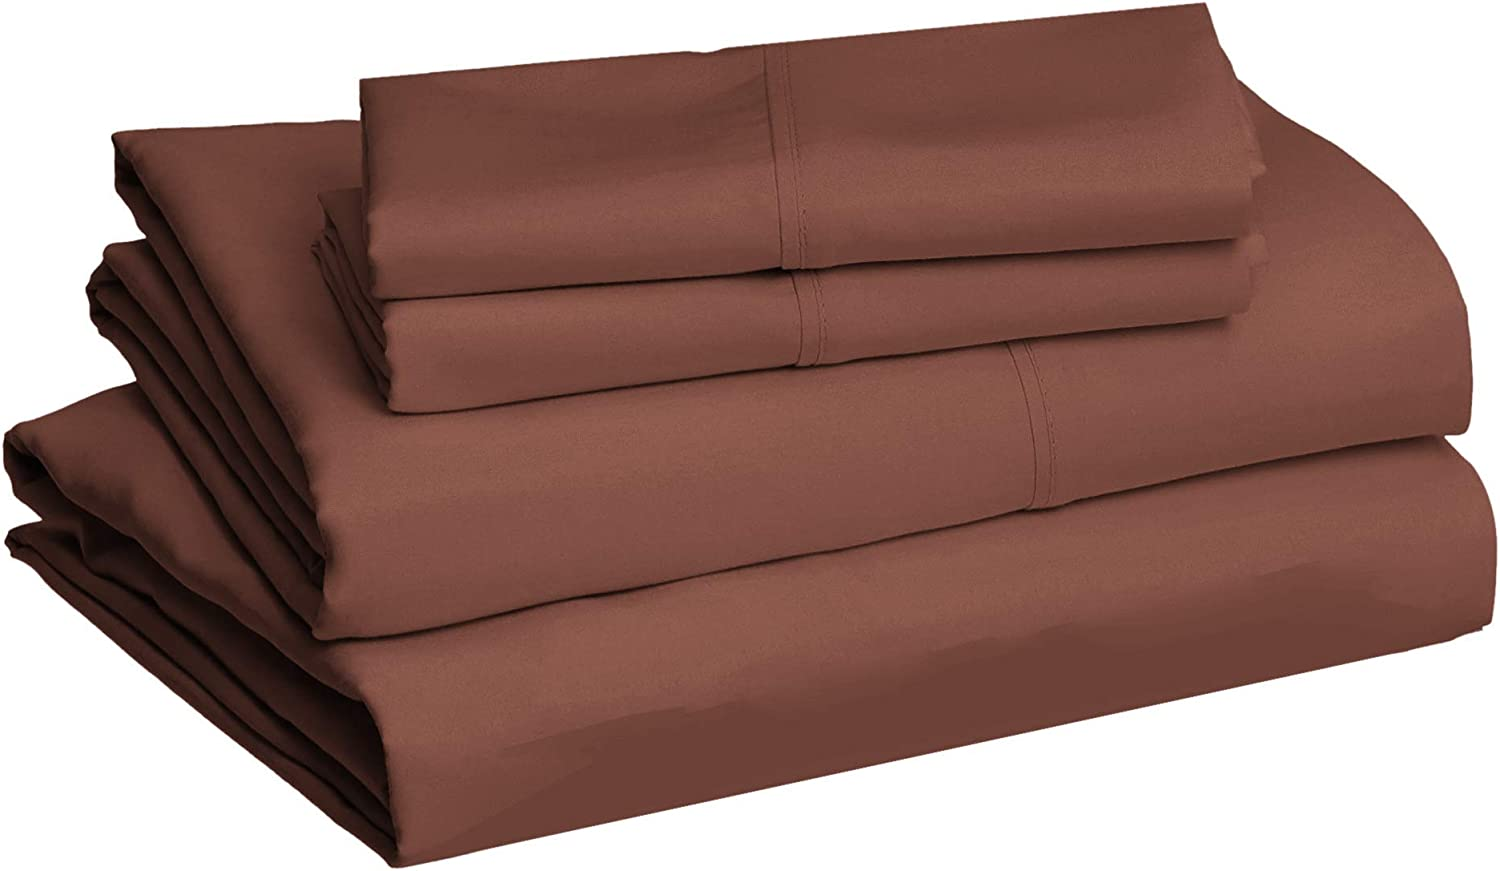 Amazon Basics Lightweight Super Soft Easy Care Microfiber Chocolate Color Bed Sheet